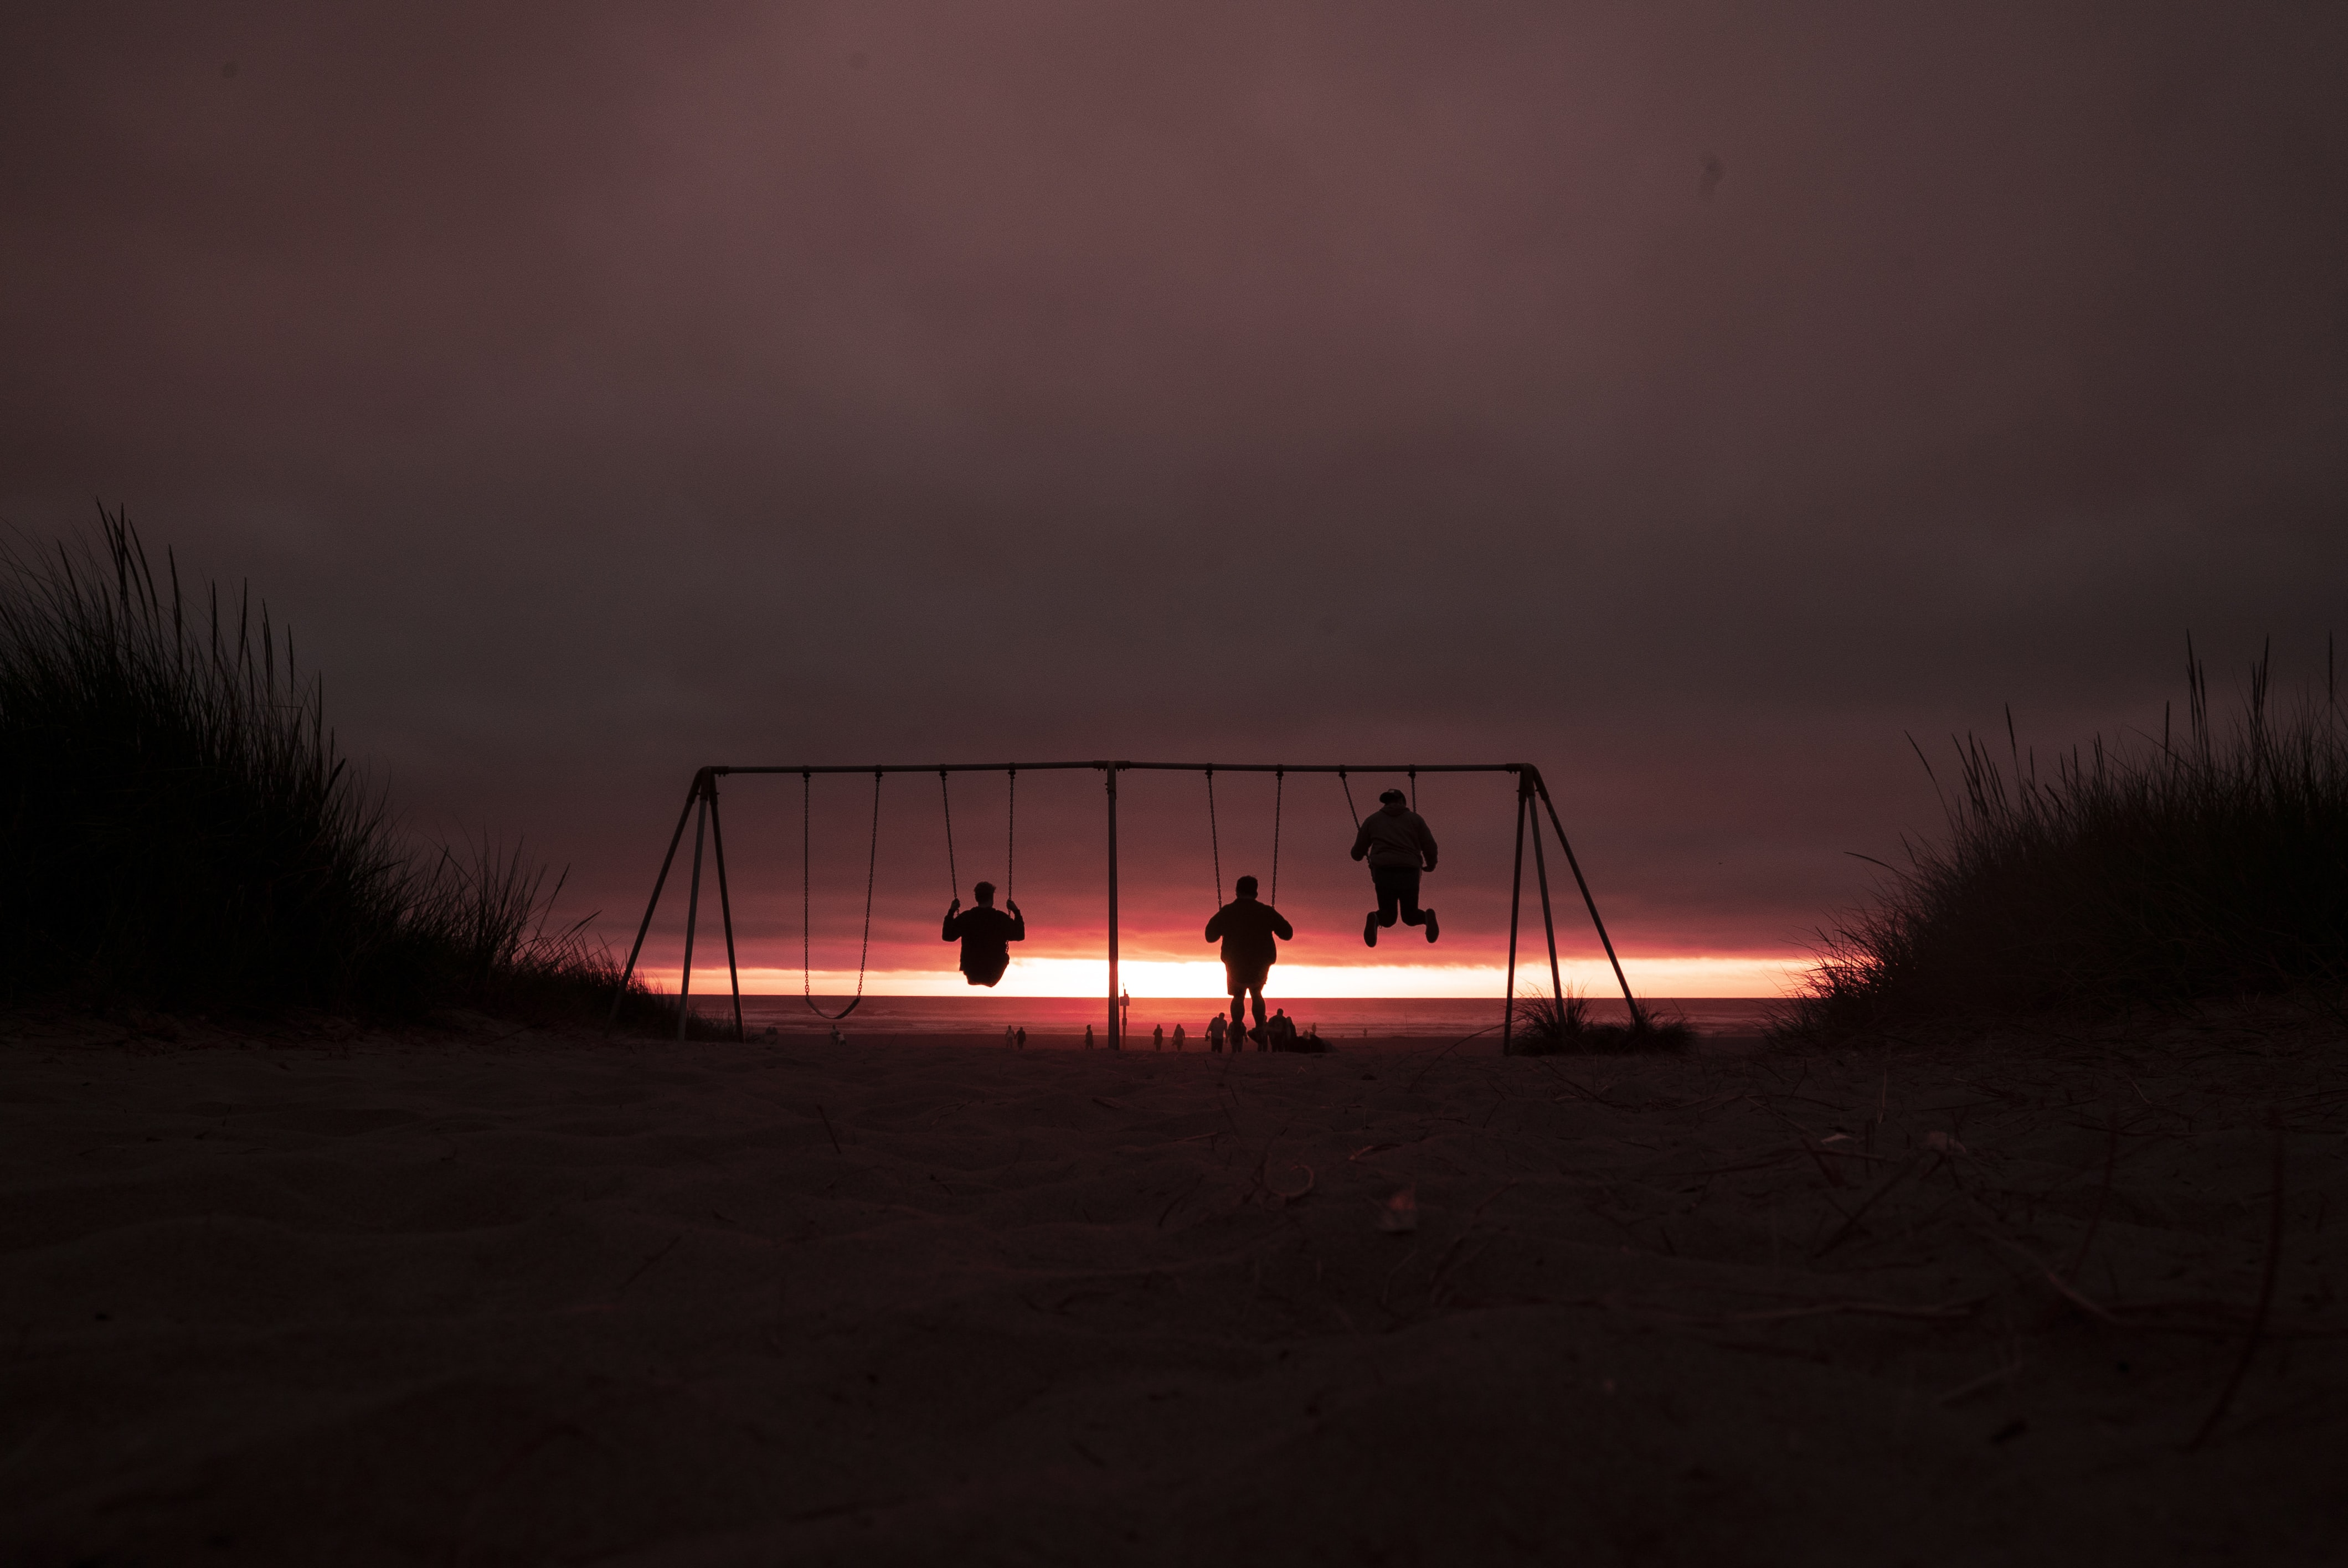 silhouette of three person swinging on outdoor swing